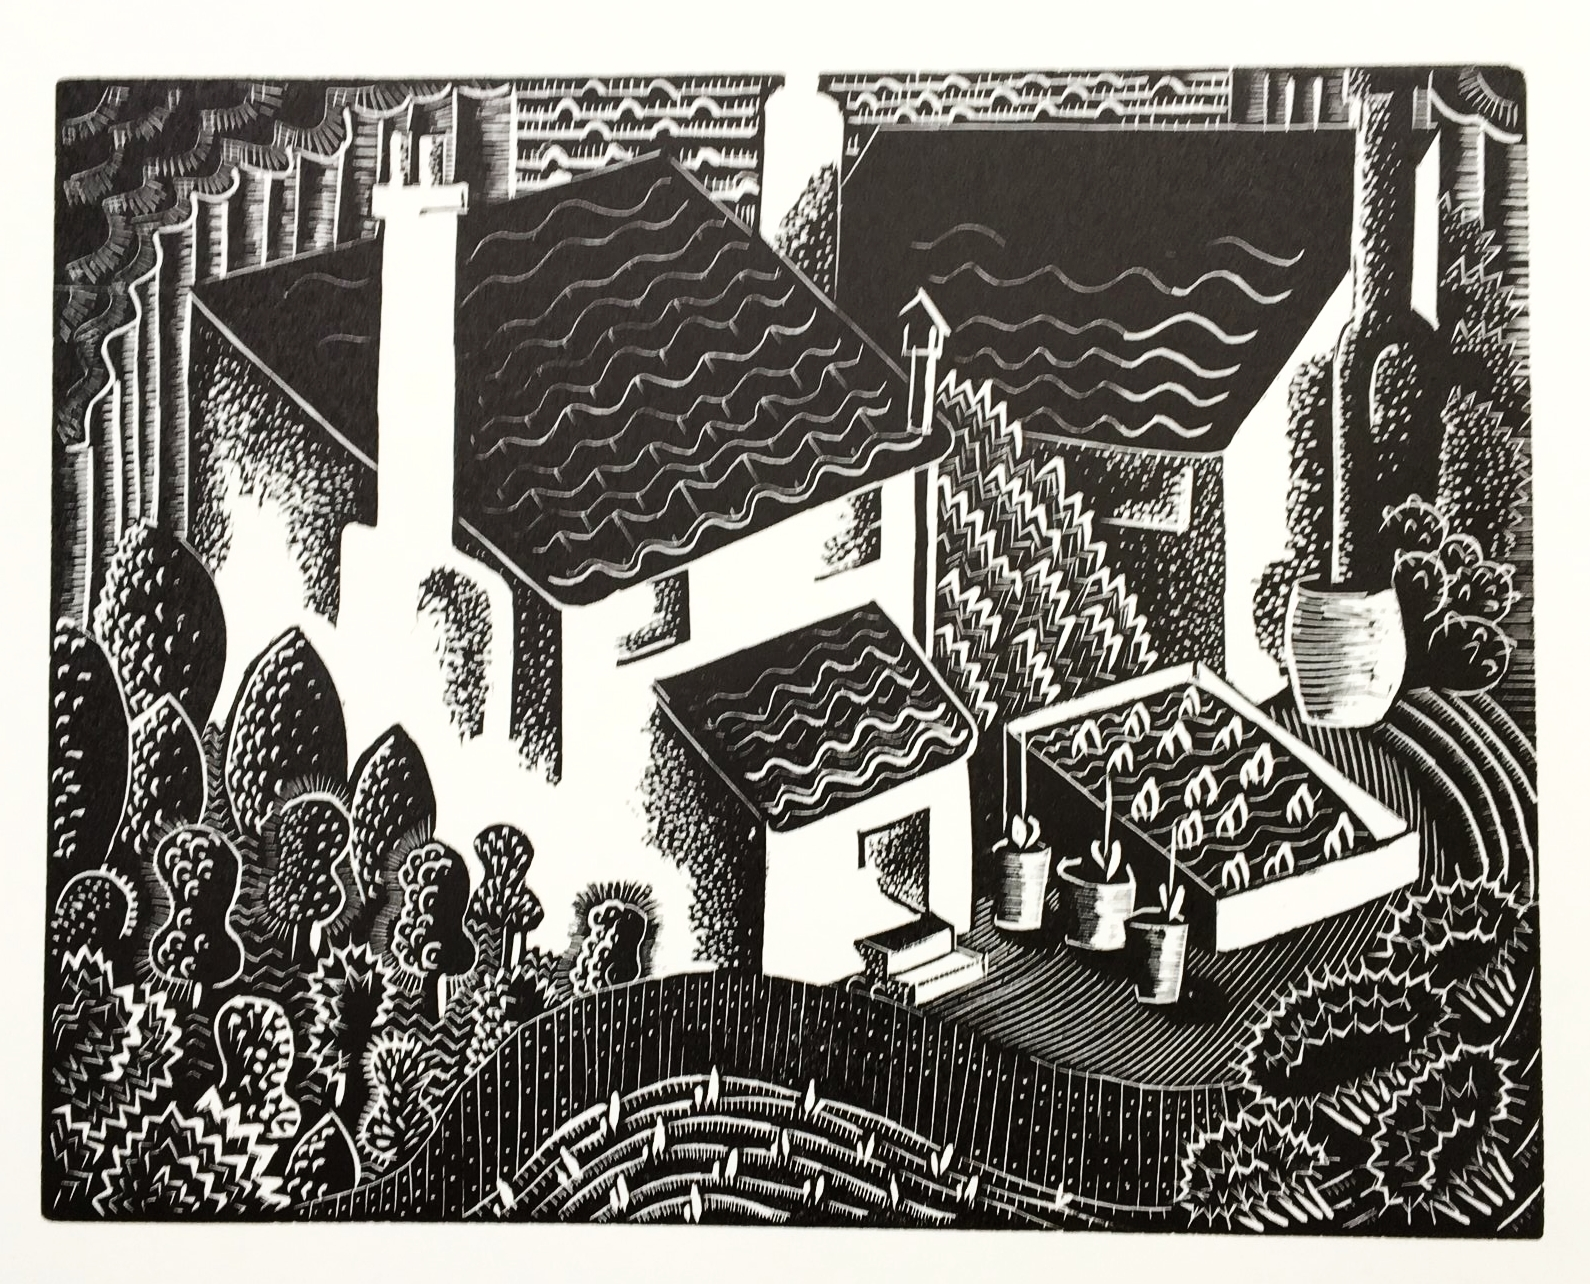 Back Gardens - wood engraving 10.5 x 14 cmsIain Macnab inscribed a copy of his book on wood-engraving to Cooper, with the words 'From one wood-pecker to another'. This small image, with its complex geometry and wonderful variety of marks, demonstrates her remarkable command of the difficult medium.£150